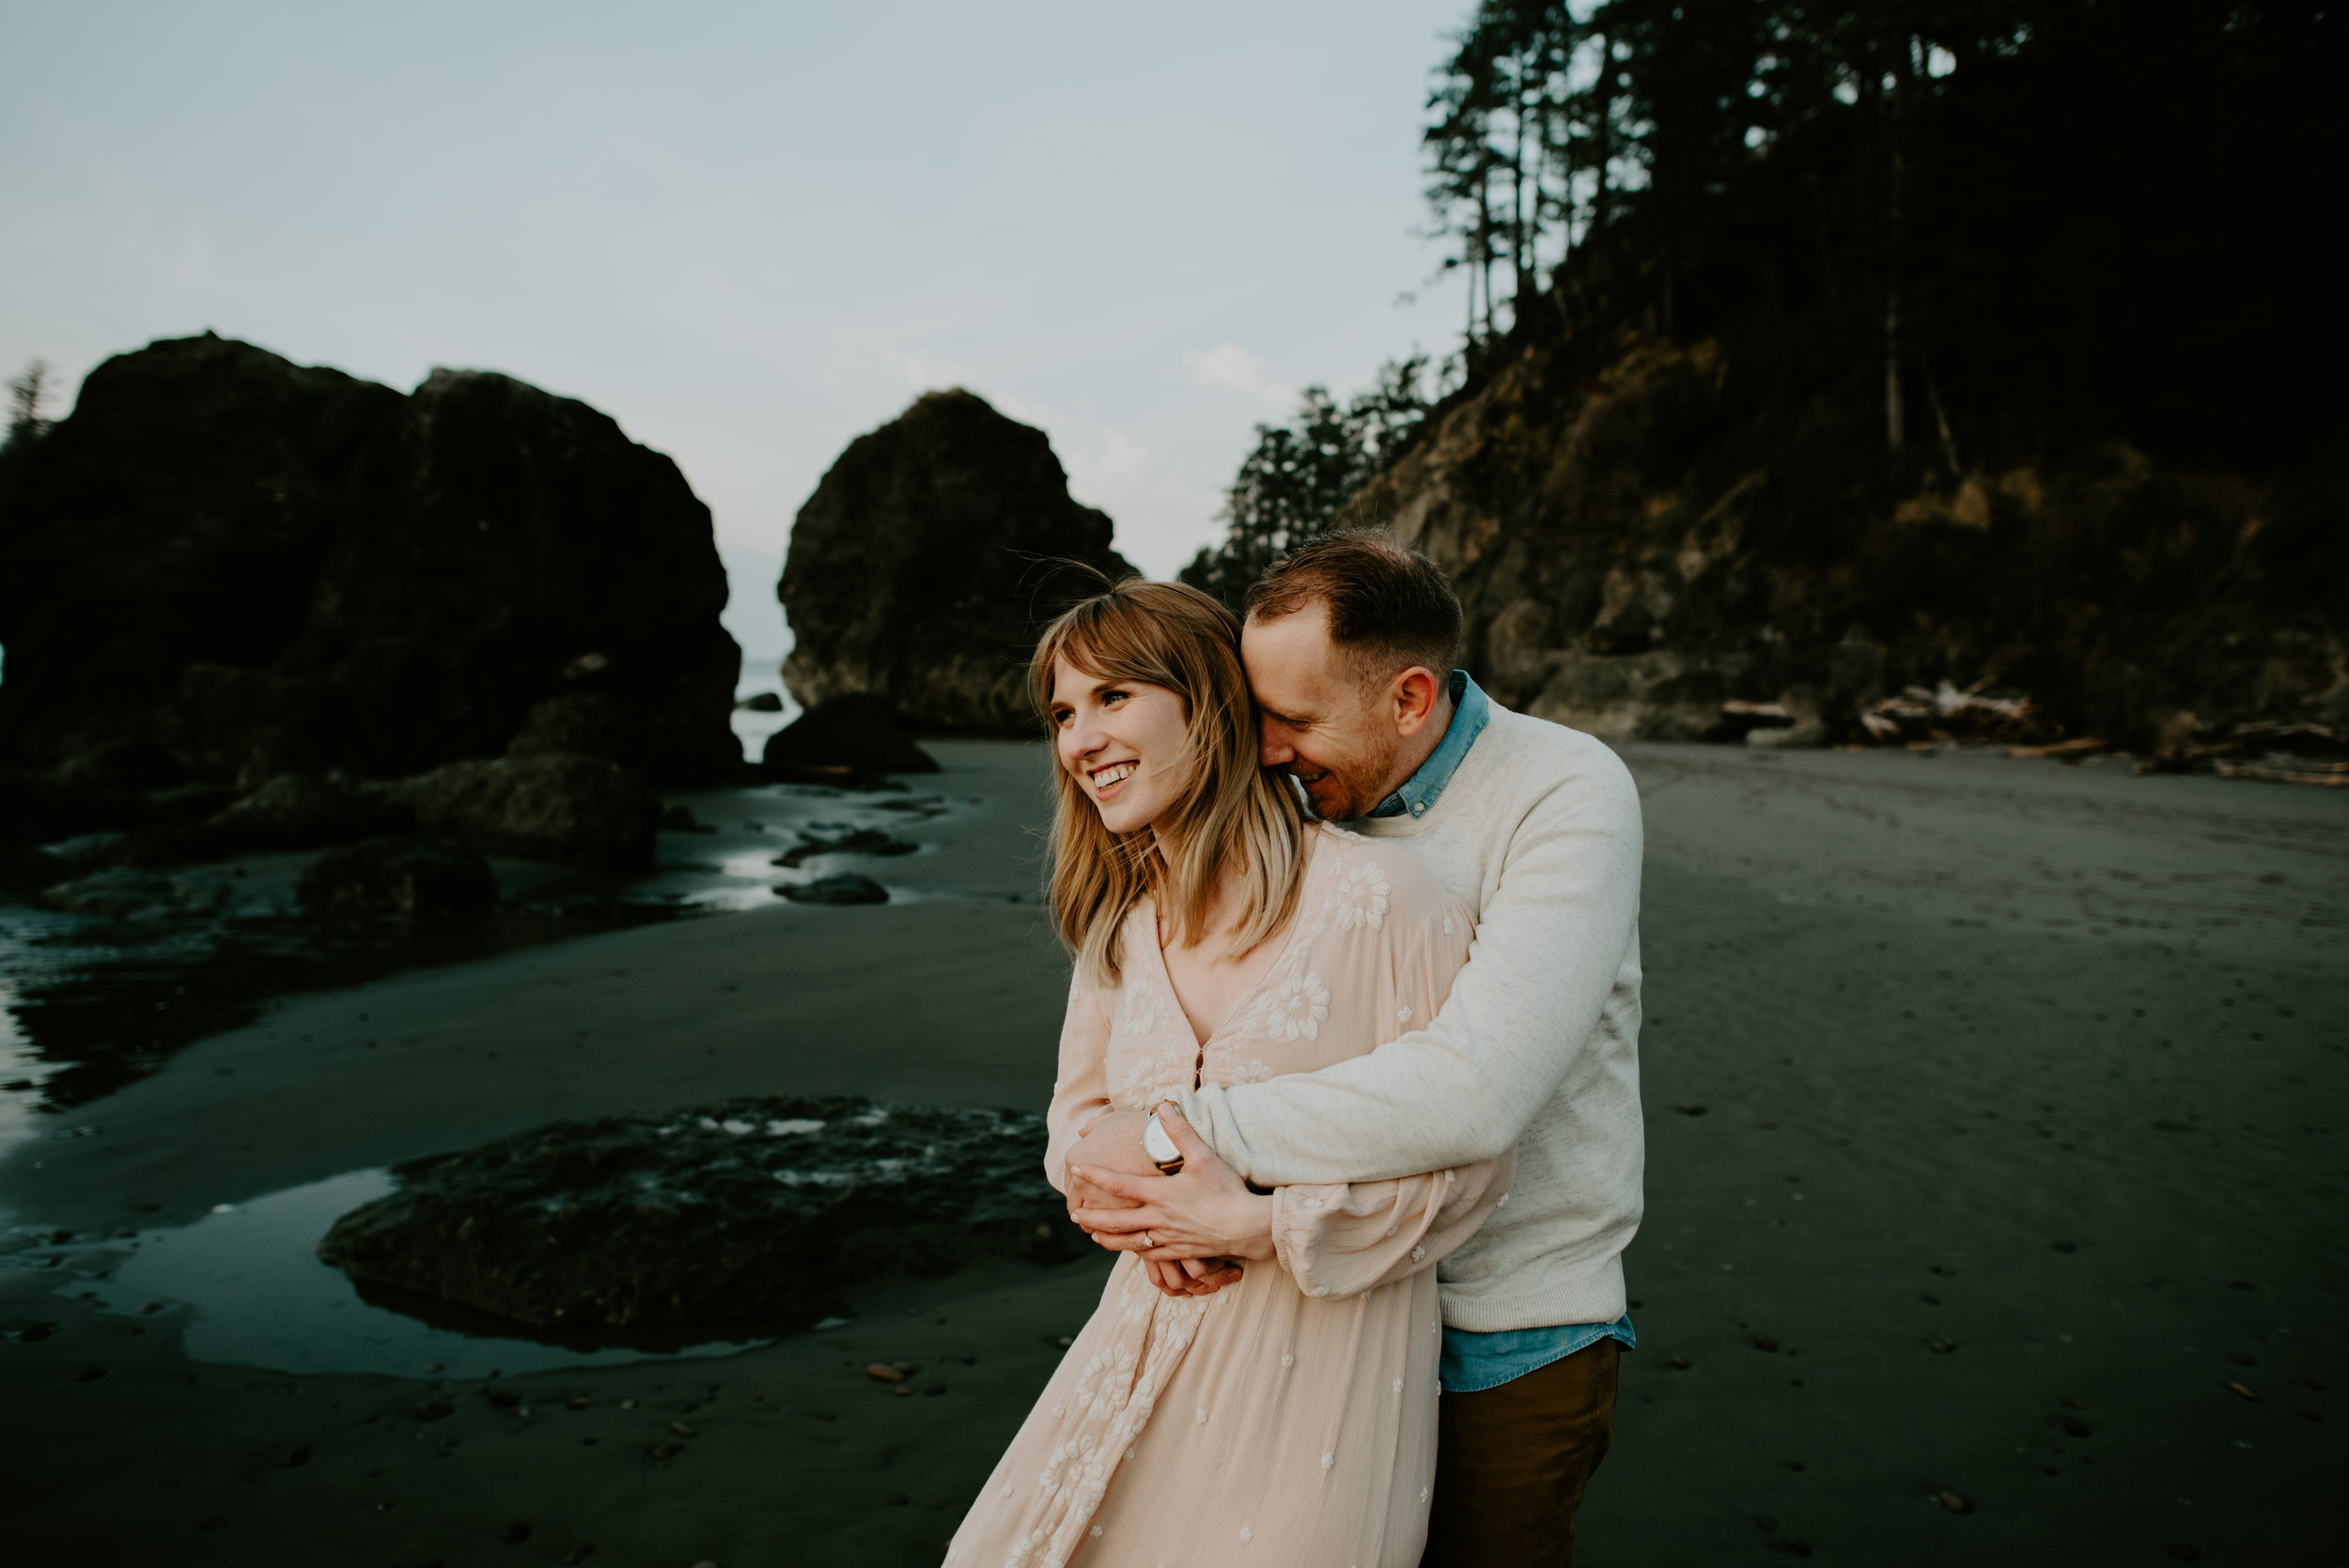 Ashley + Peter - Kamra Fuller Photography - Olympia Wa Engagement Session - Ruby Beach Engagement Session - Seattle Wedding Photographer - Washington Wedding Photographer - Port Angeles Wedding Photographer - Snoqualmie Wedding Photographer - Seattle Engagement Photography - PNW Couple's Photography - Oregon Coast Engagement Session - Washington Coast Engagement Session - Washington Coast Wedding Photographer - West Coast Wedding Photographer - California Wedding Photographer - Portland Wedding Photographer